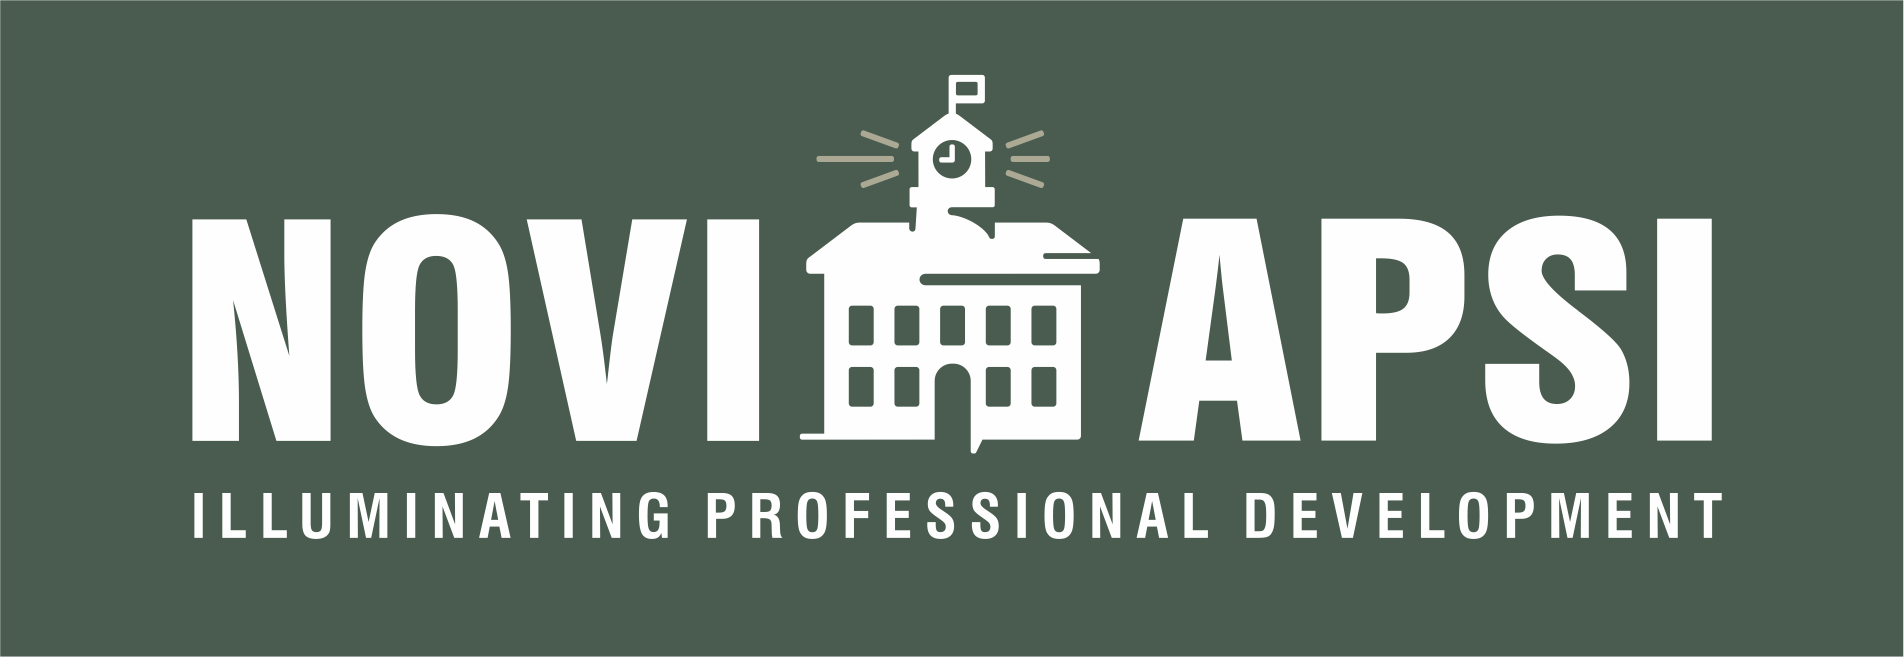 Novi AP Summer Institute 2021 - Online, Session 2